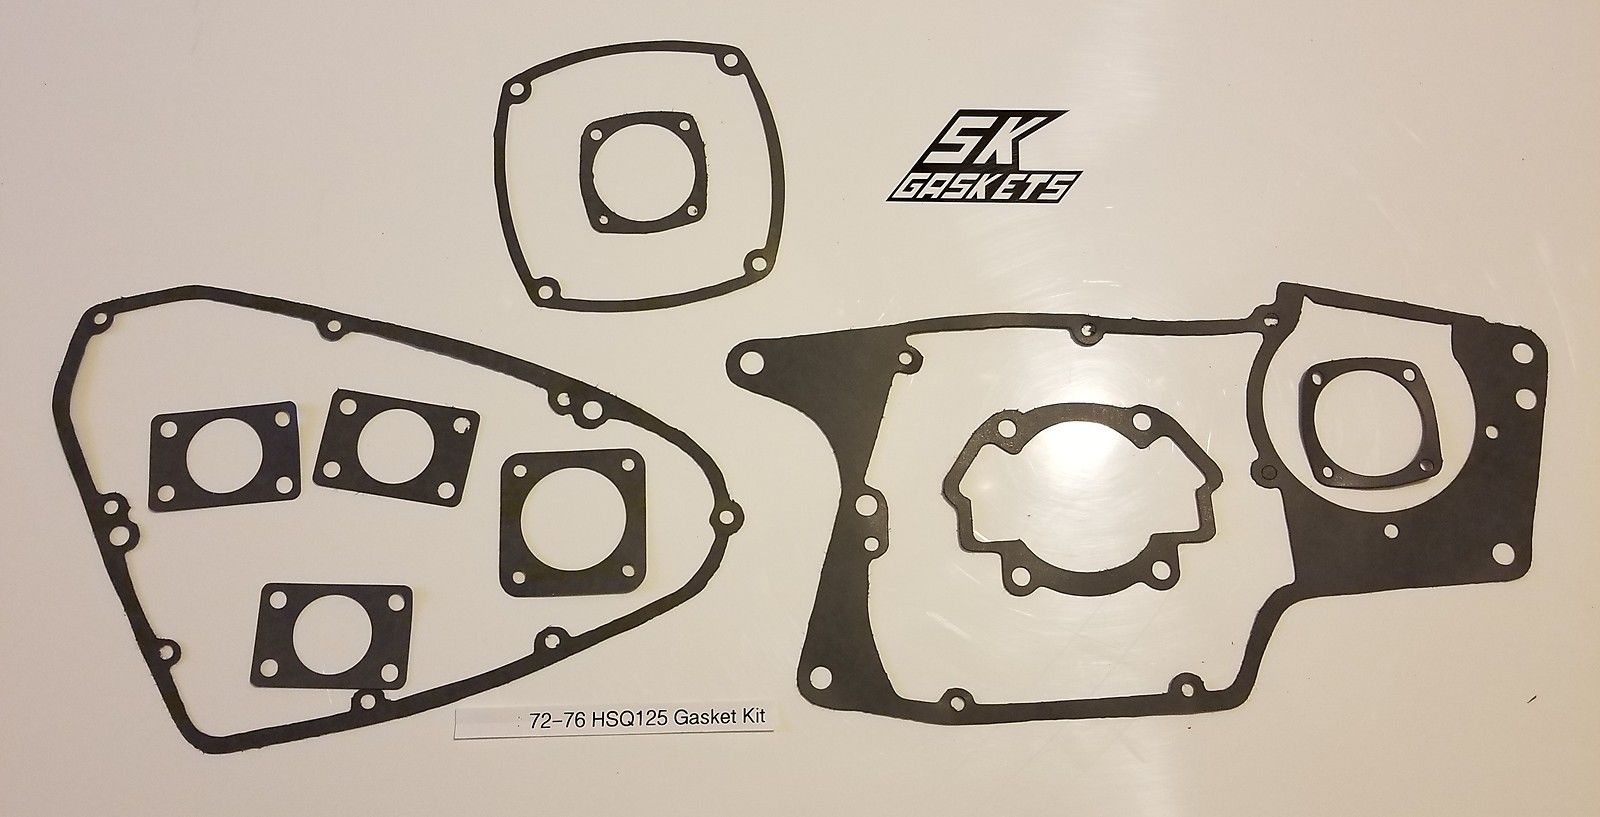 1972 1973 1974 1975 1976 Husqvarna CR WR 125 Complete Engine Gasket Kit